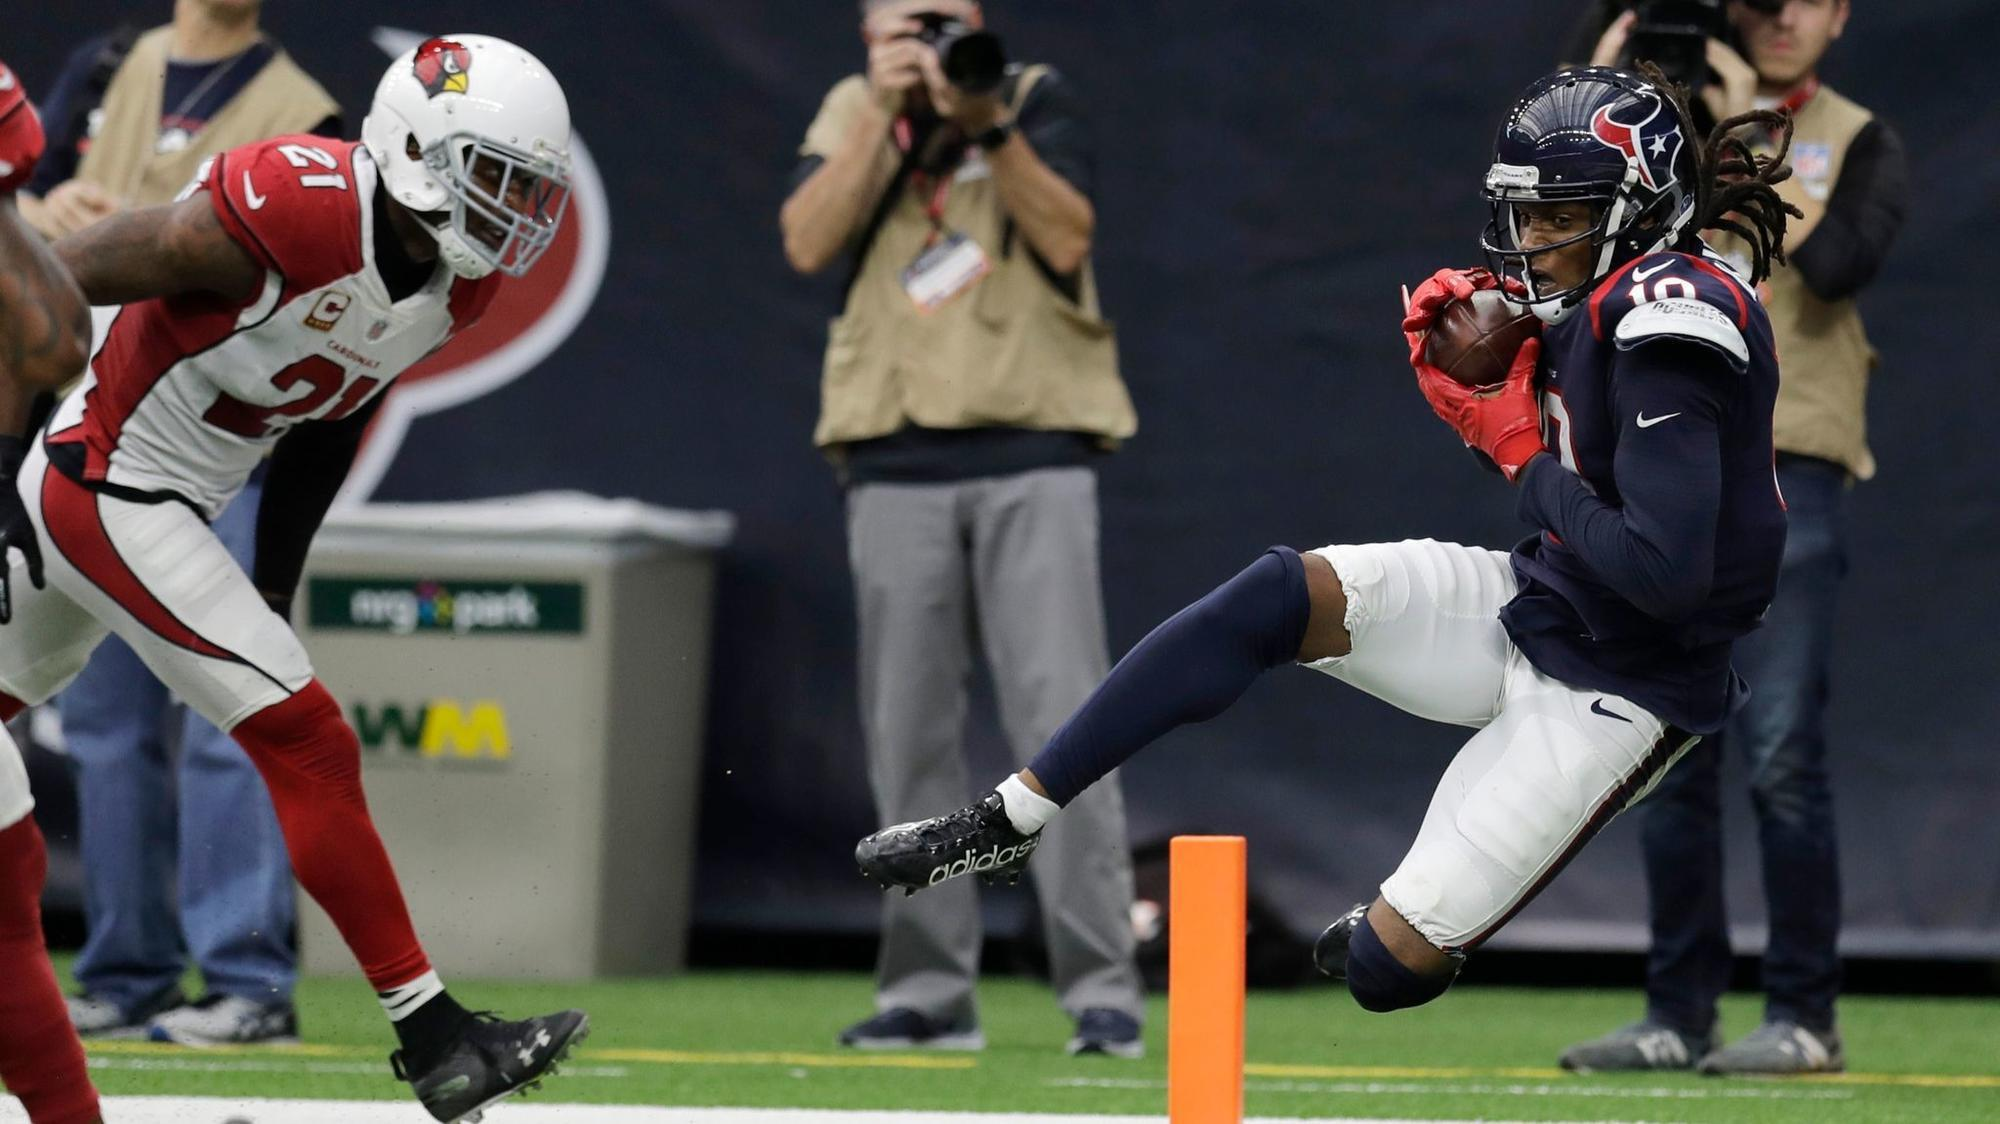 Ravens defense plans to pay plenty of attention to Texans receiver